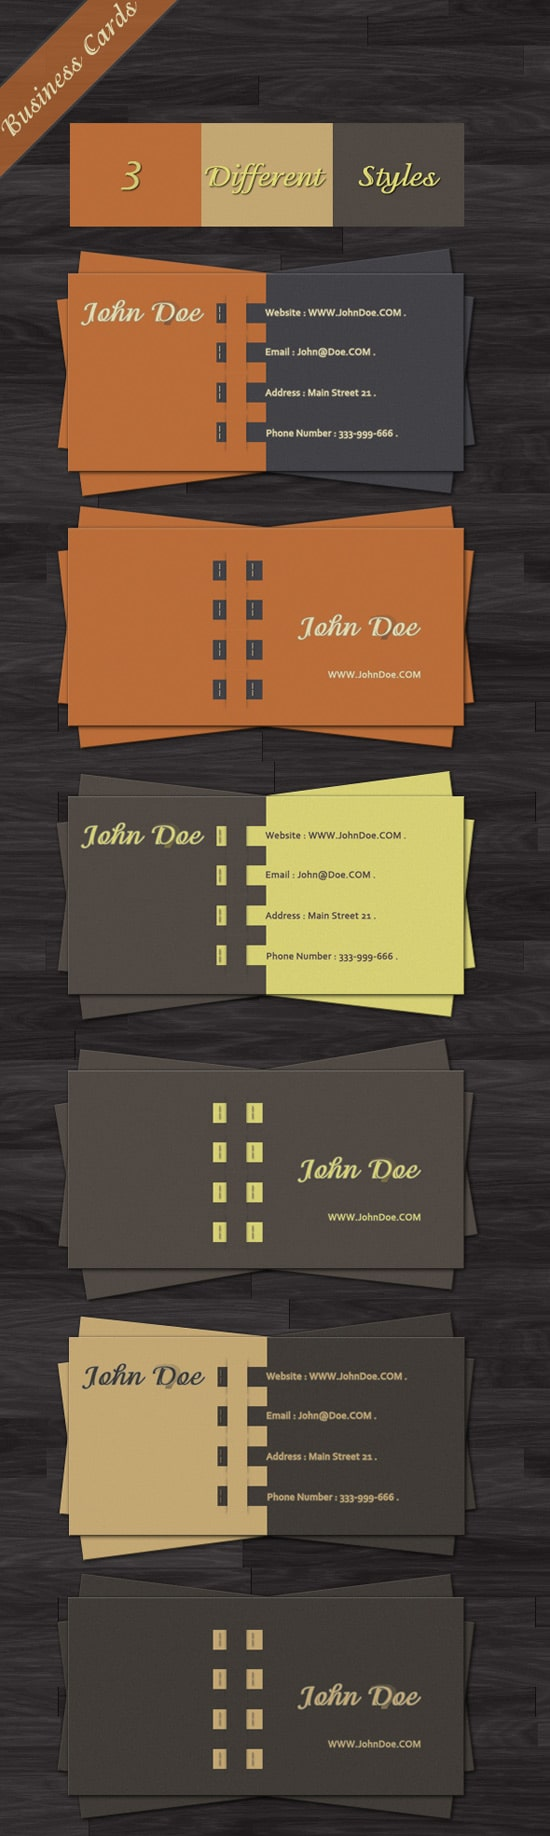 100 free business card templates designrfix business is business free psd vector business card wajeb Image collections